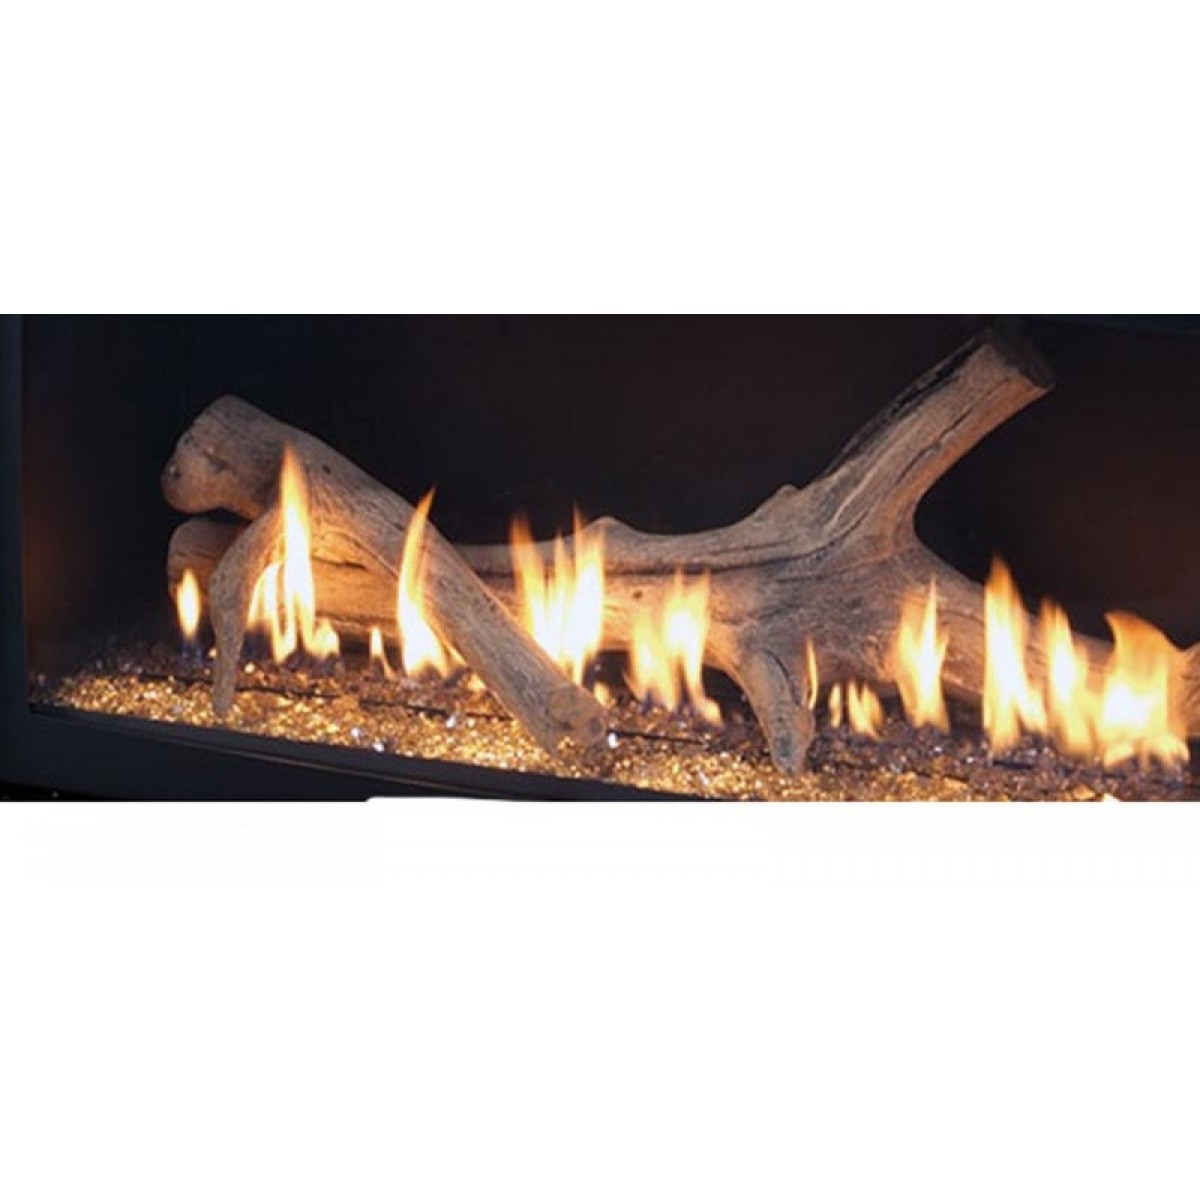 Majestic Adw600 Aged Driftwood Log Set For Wdv600at